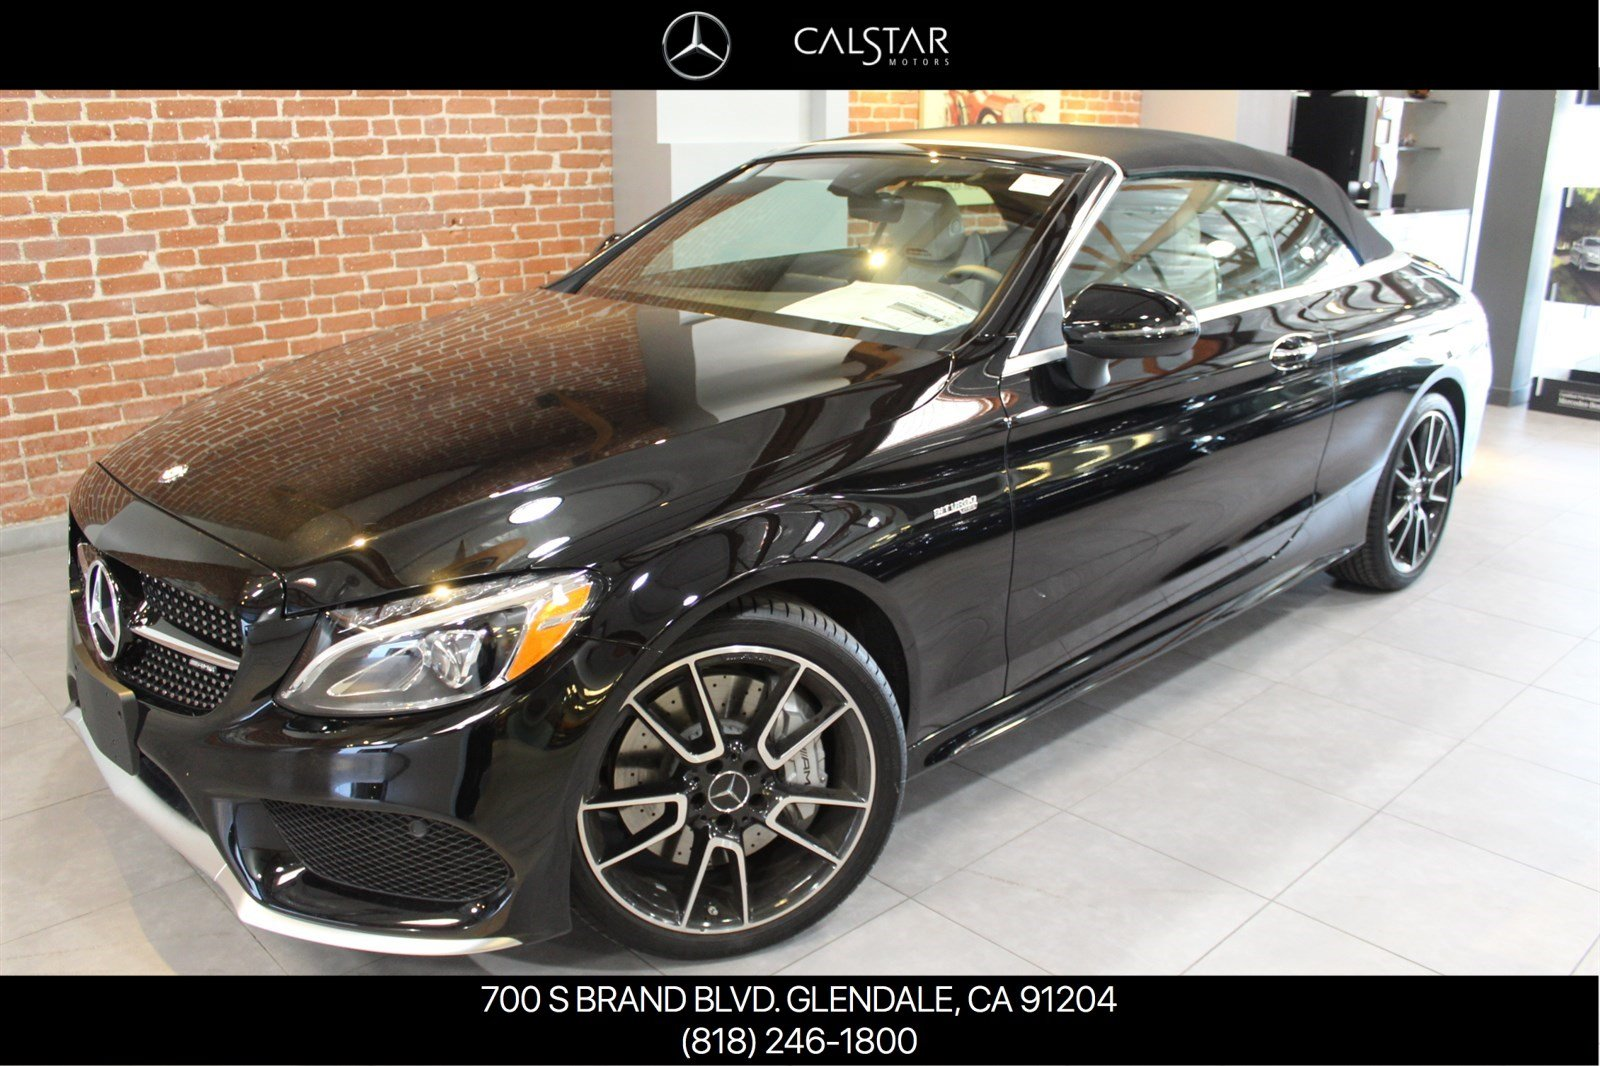 New 2017 mercedes benz c class c 43 amg cabriolet for Calstar mercedes benz